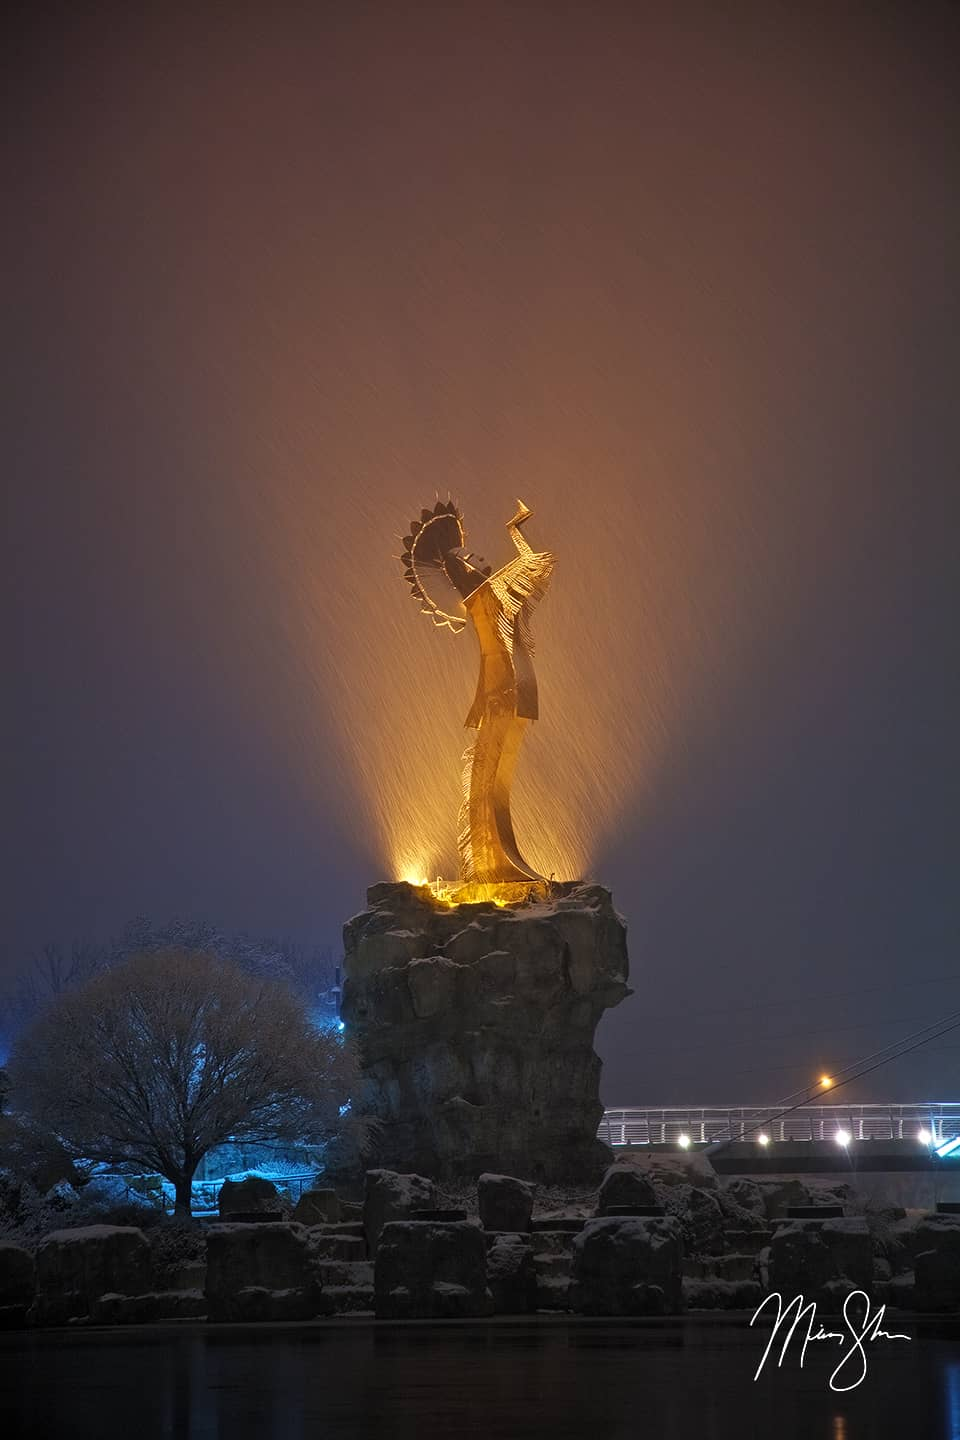 Open edition fine art print of Keeper of the Plains Winter Illumination from Mickey Shannon Photography. Location: Keeper of the Plains, Wichita, KS